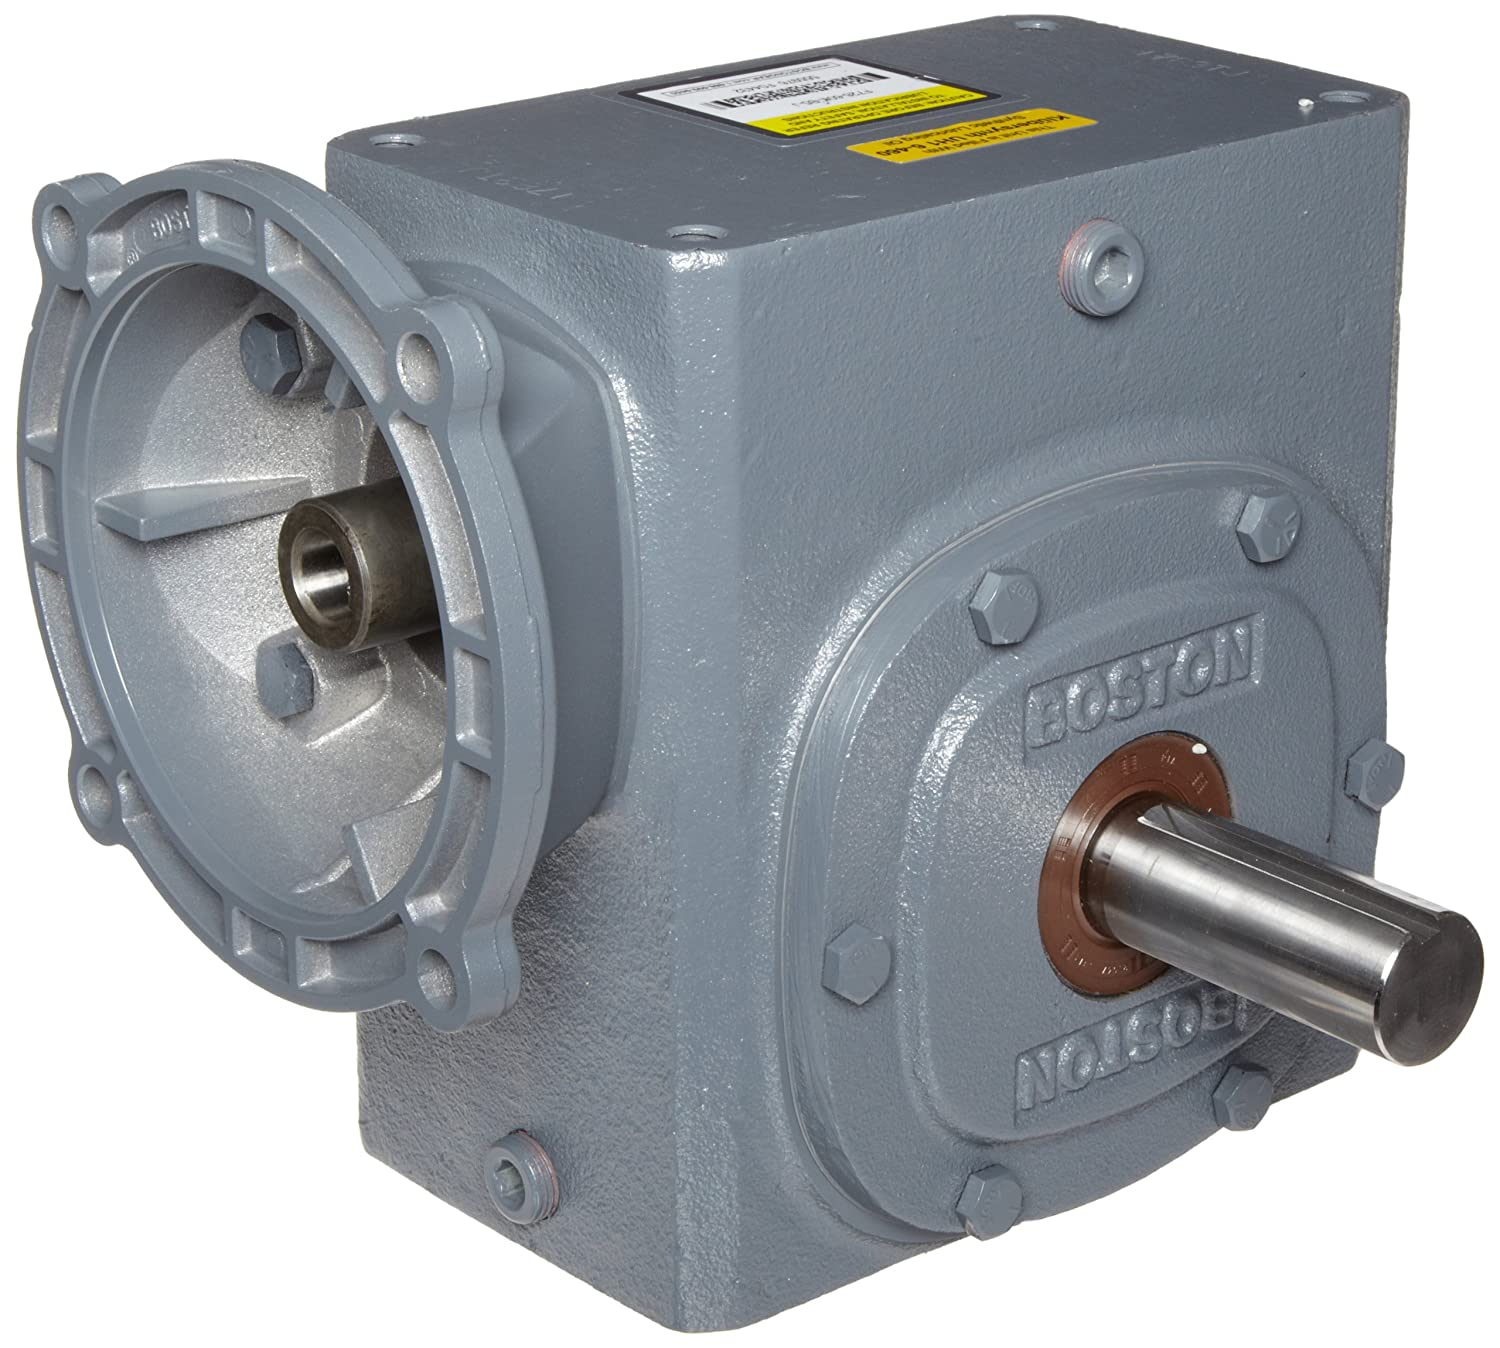 2.62 Center Distance NEMA 140TC Flange Input 3.94 HP and 1345 in-lbs Output Torque at 1750 RPM Left and Right Output 10:1 Ratio Boston Gear F726B10KB7H Right Angle Gearbox